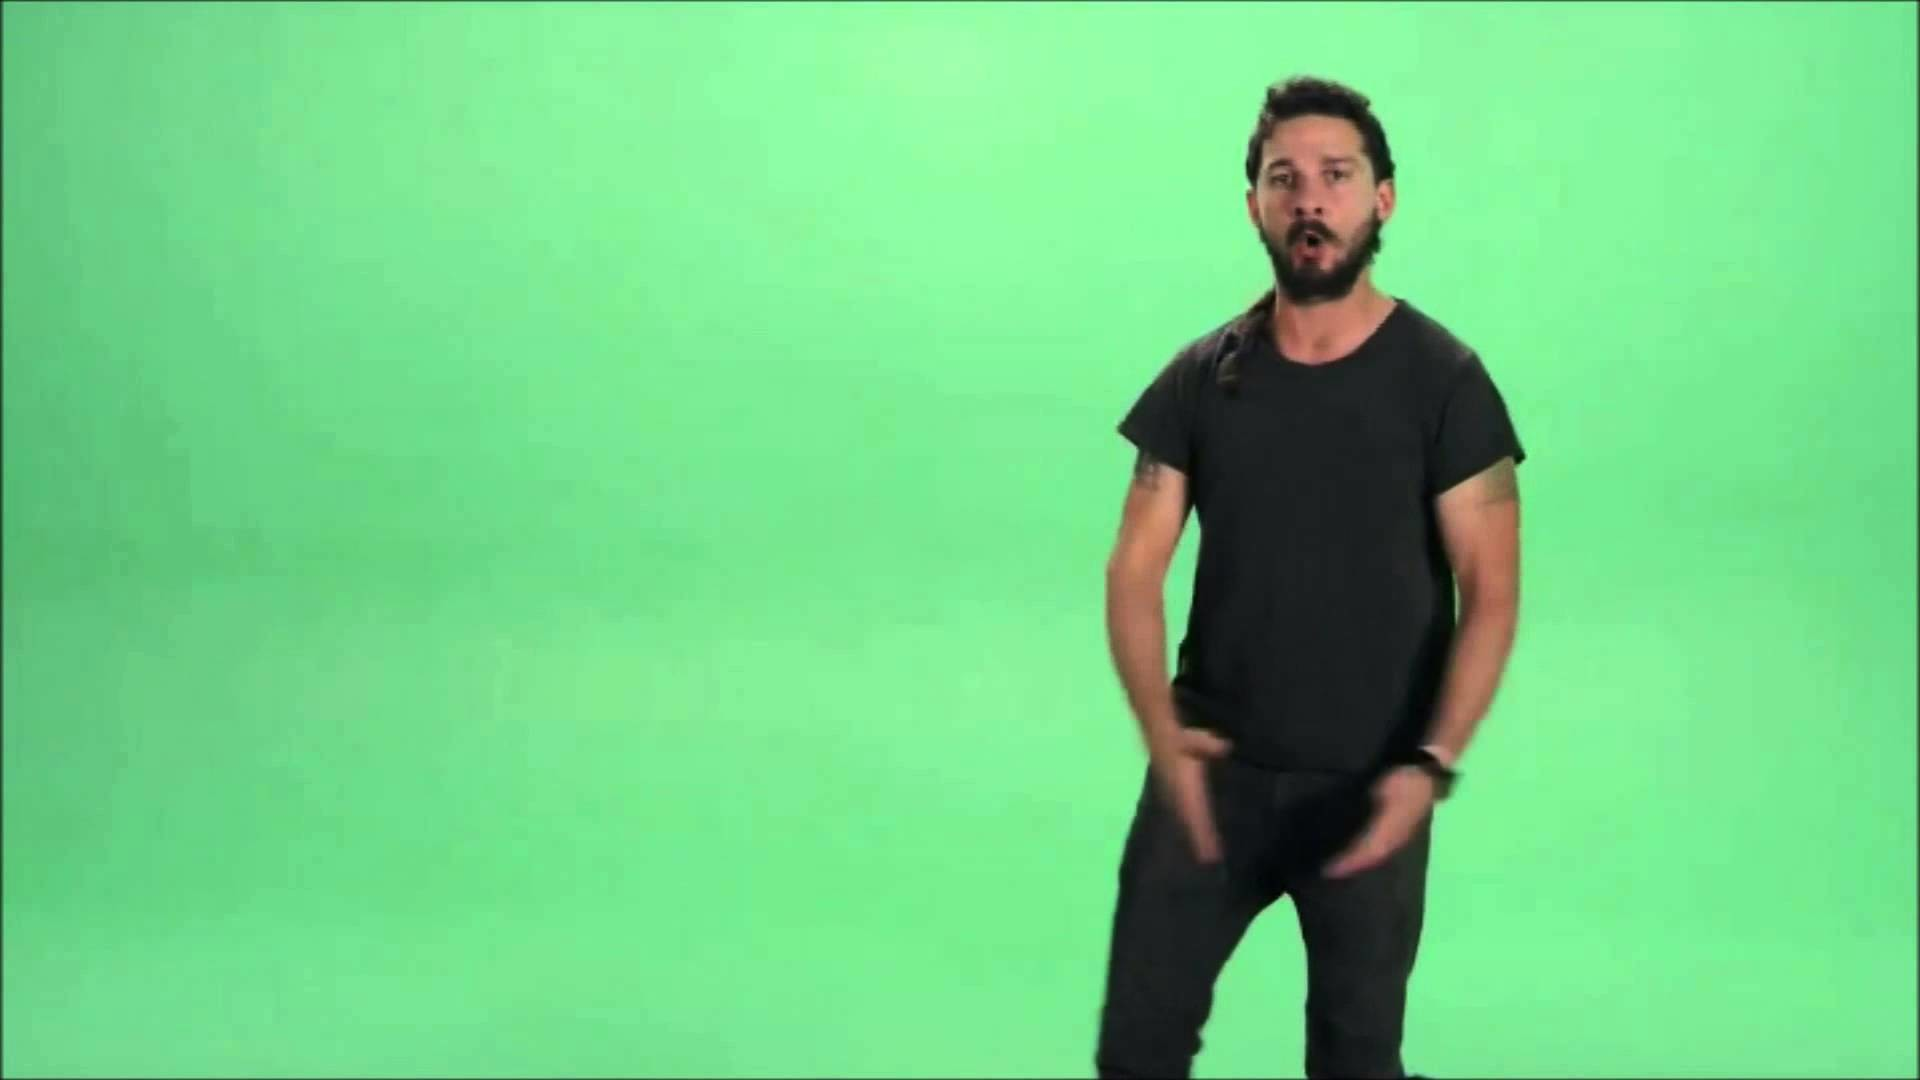 Shia LaBeouf – 'Just Do It' motivational speech (Metal Version)